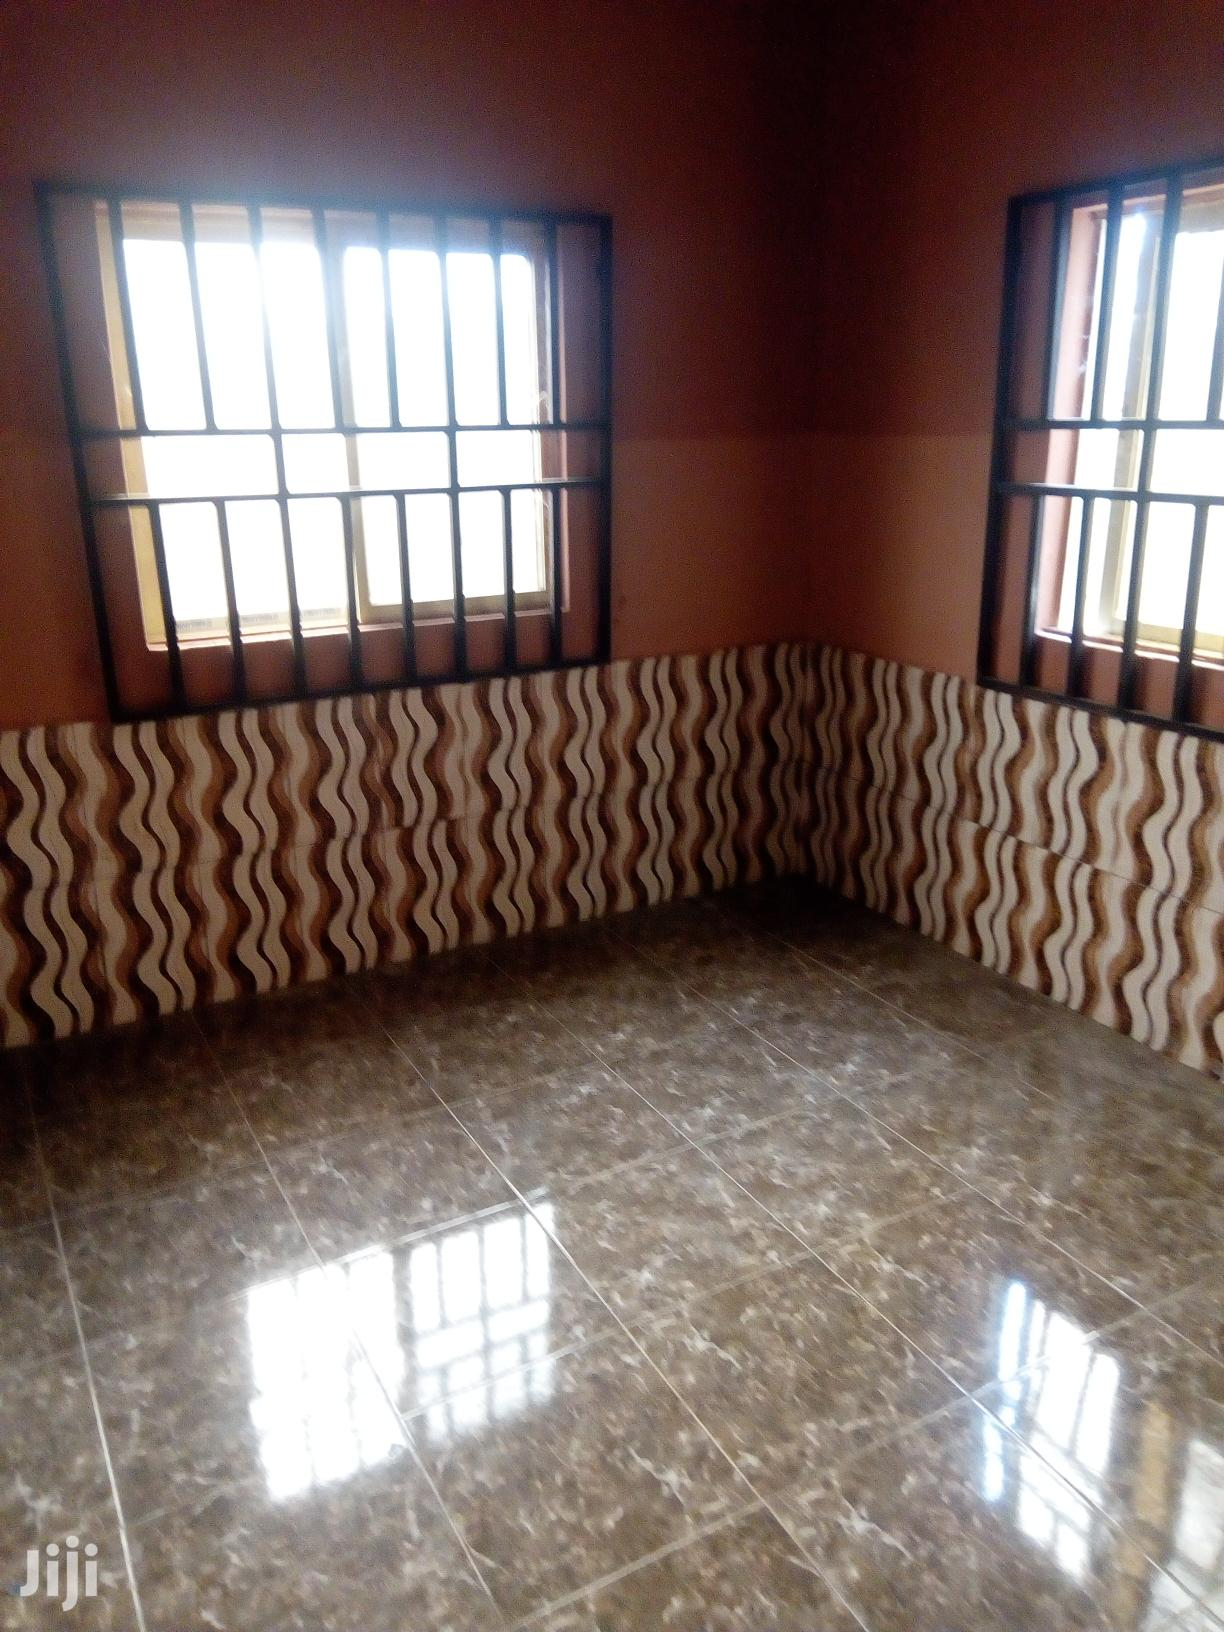 3 Bedroom Flat to Let Ifite | Houses & Apartments For Rent for sale in Awka, Anambra State, Nigeria